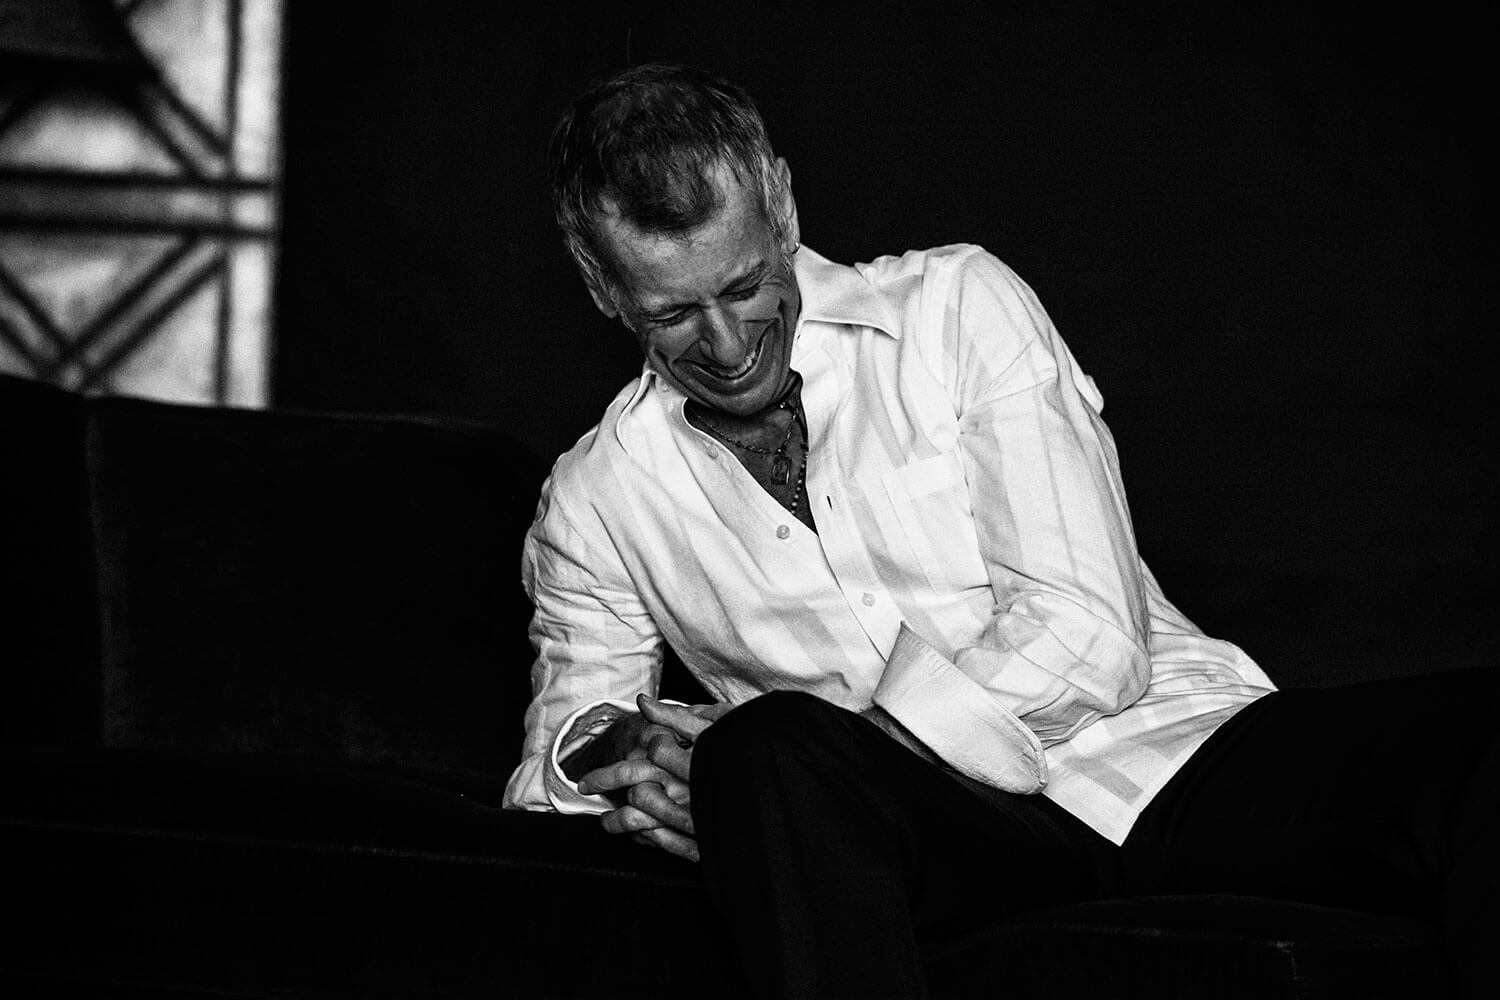 Joe Locke (photo: Joseph Boggess)